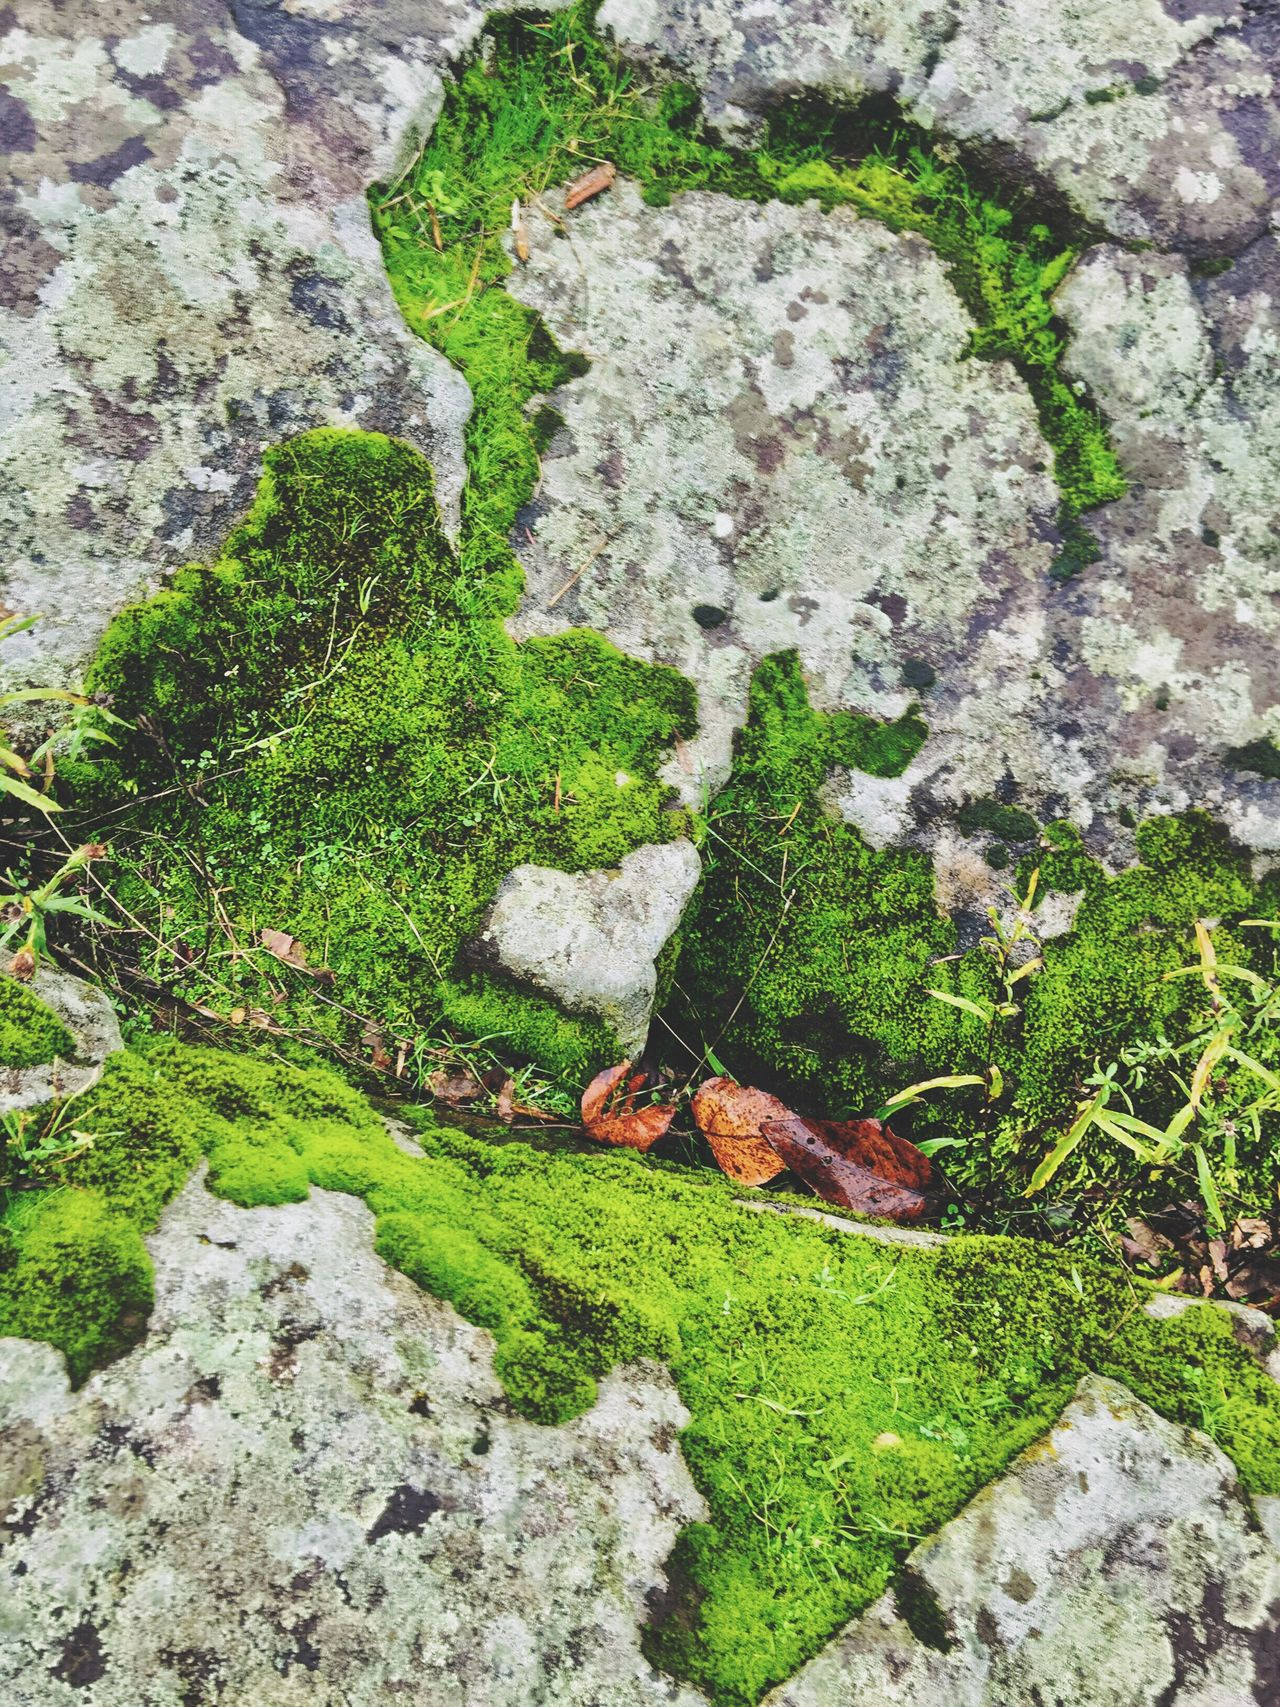 Heart Shapes Nature Outdoors Heart Shapes In Nature Green Color Growth Close-up Perspective Shapes In Nature  Views Natural Condition Layers And Textures Textured  Beauty In Nature Moss & Lichen Abstract Nature Weathered Abstractions Power In Nature Rock Formation